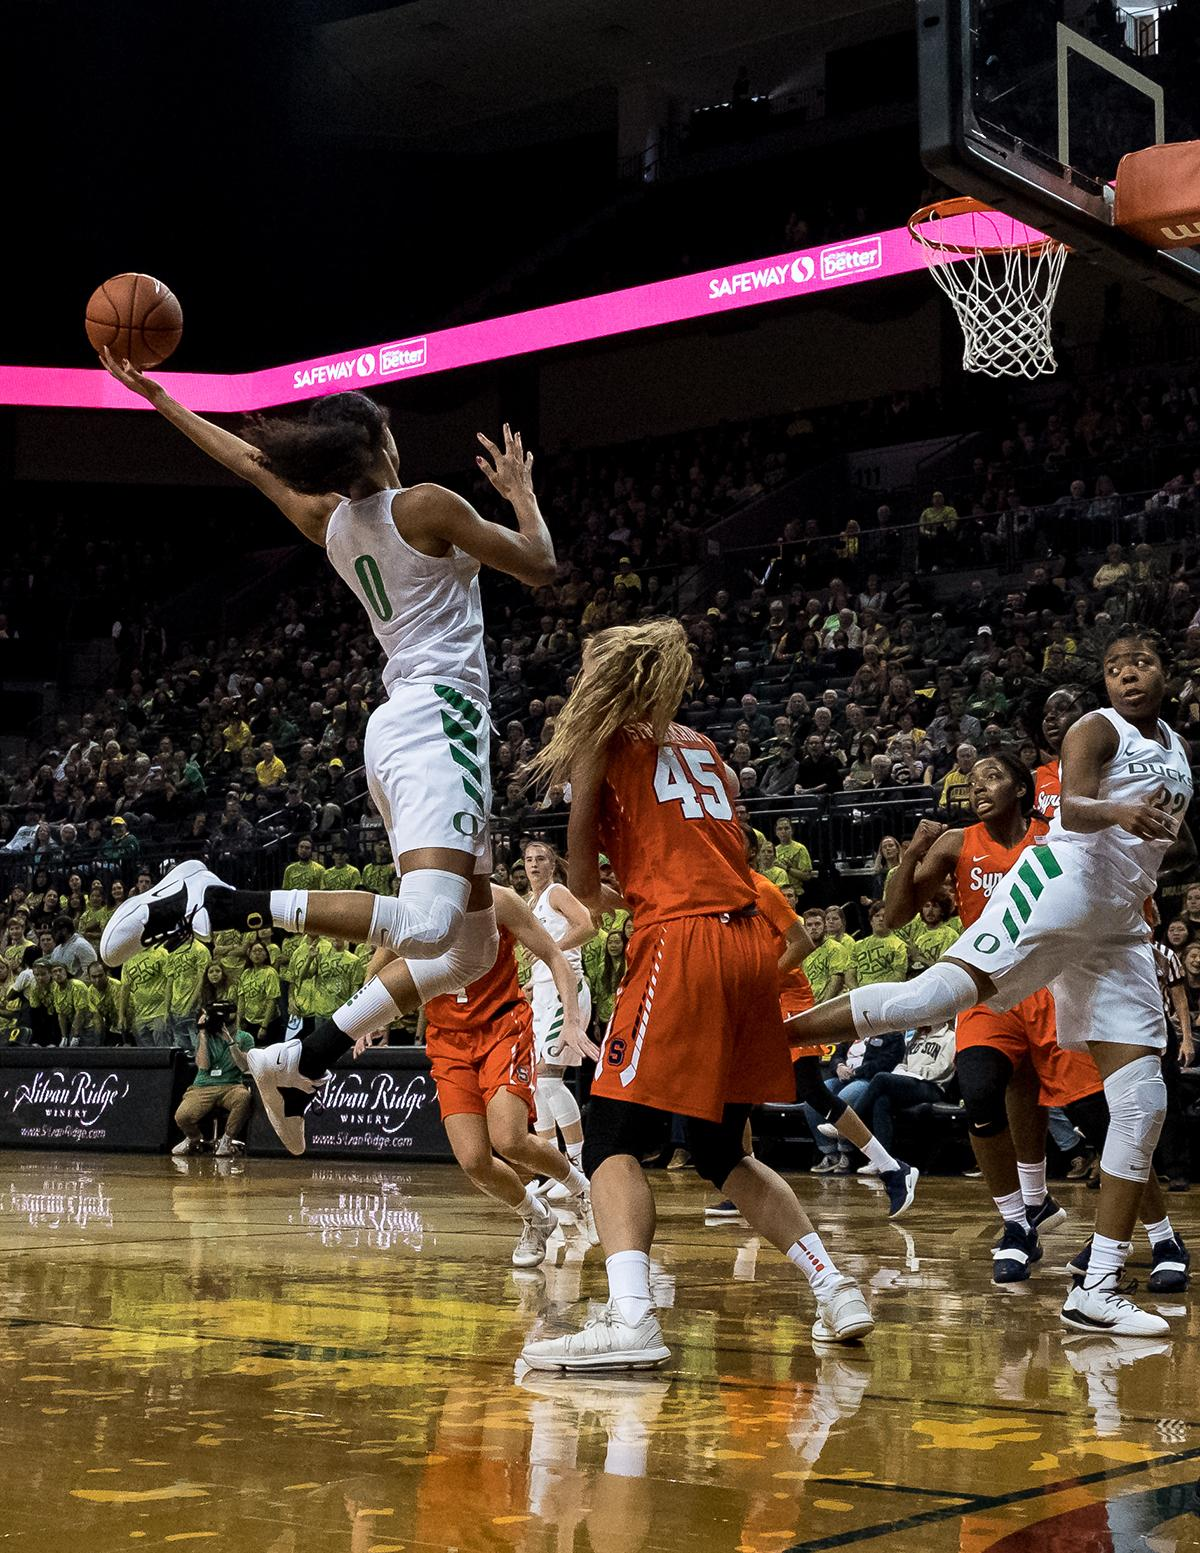 Oregon Ducks Satou Sabally (#0) stretches for an offensive rebound during Saturdays game against the Syracuse Orange. The 3rd ranked University of Oregon Ducks defeated 18th ranked Syracuse Orange 75-73 in a close game at Matthew Knight Arena Saturday. Sabrina Ionescu lead the Ducks with a double double, scoring 26 points and 10 rebounds. The Ducks Ruthy Hebard also finished the game with a double double, scoring 11 points and 14 rebounds. The Ducks had four players score in the double digits with Erin Boley scoring 13 and Maite Cazorla finishing the game with 14 points. In a tight game, the ducks lead the Orange 48-44 at the half. Syracuse took the lead with 3 minutes left in the game, but a 3-pointer by Ducks Erin Boley with 51 seconds left in the game would help the Ducks take the lead for the remainder. Oregon is now 2-0 on the season. The Ducks travel to Utah State Wednesday November 14th before returning to Matthew Knight Arena Sunday November 18th to face Buffalo. Photo by Jeff Dean